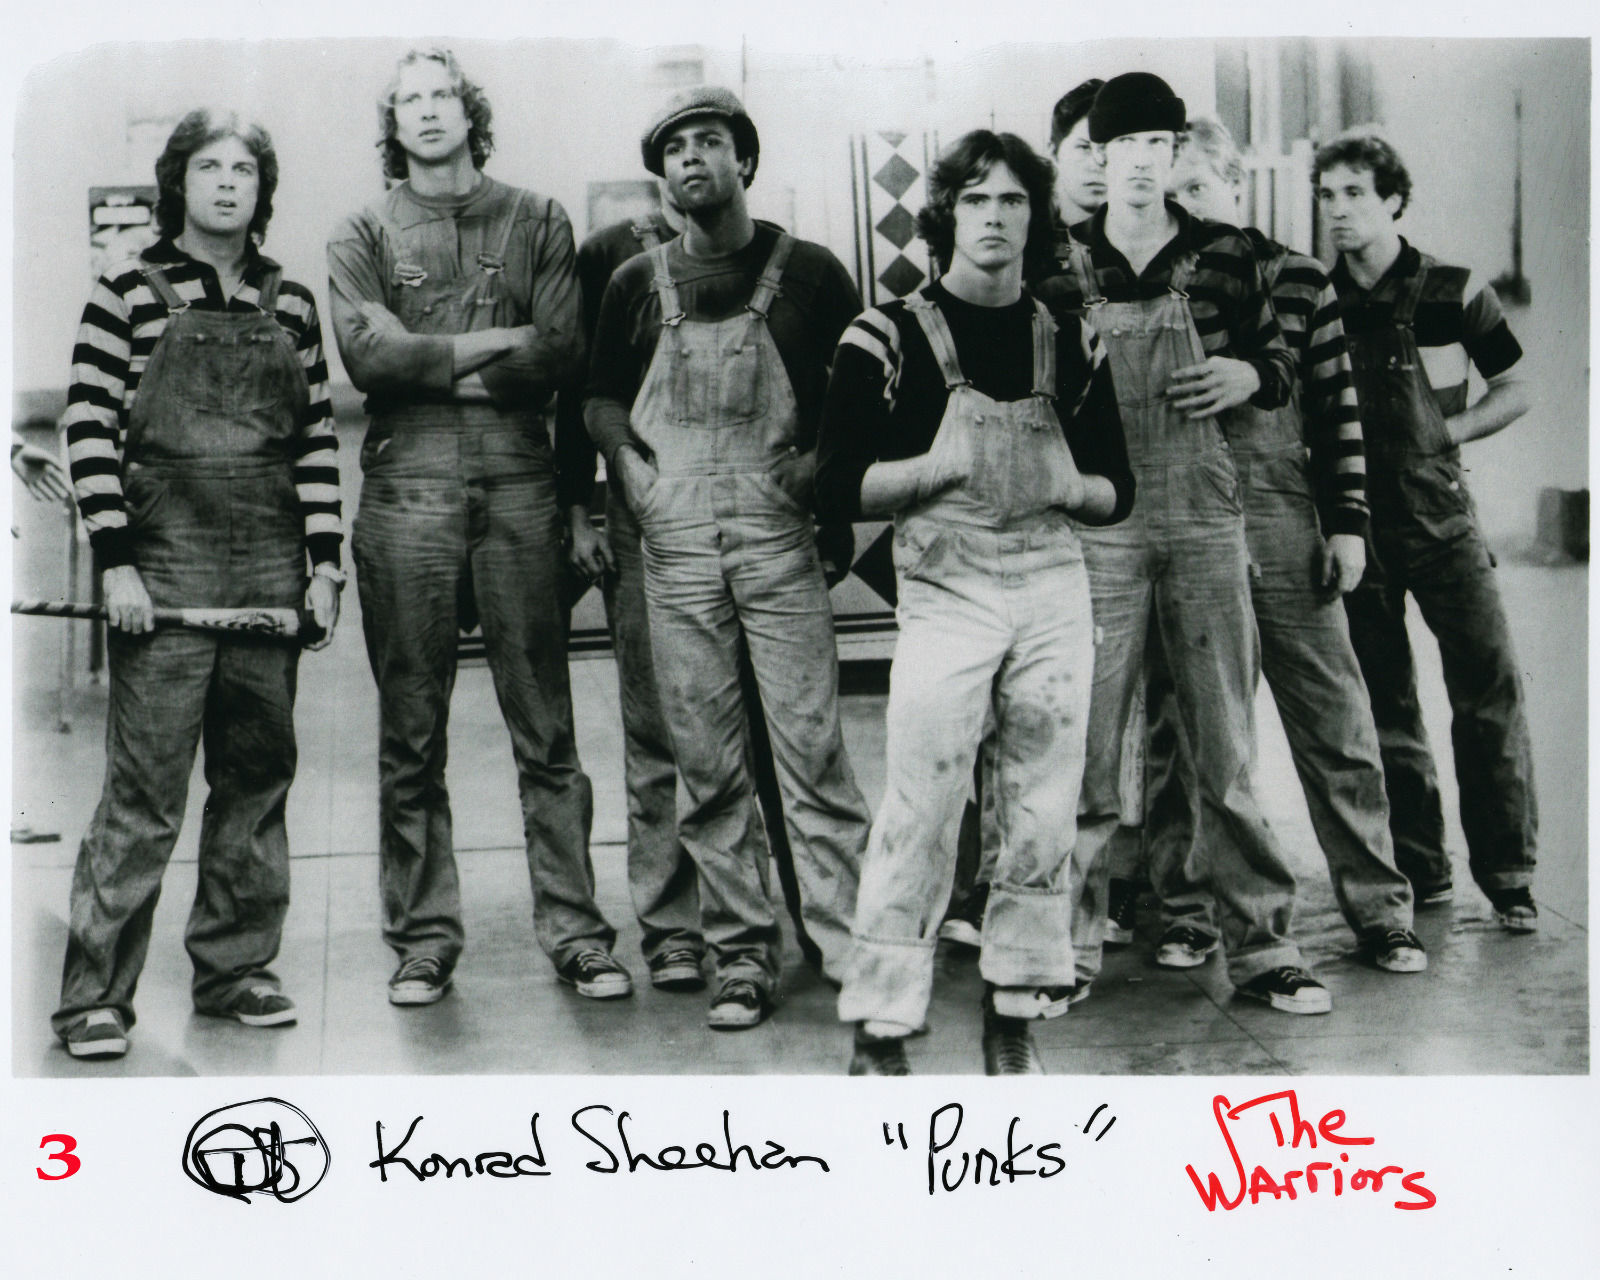 The Warriors Movie Site - Konrad Sheehan Autograph